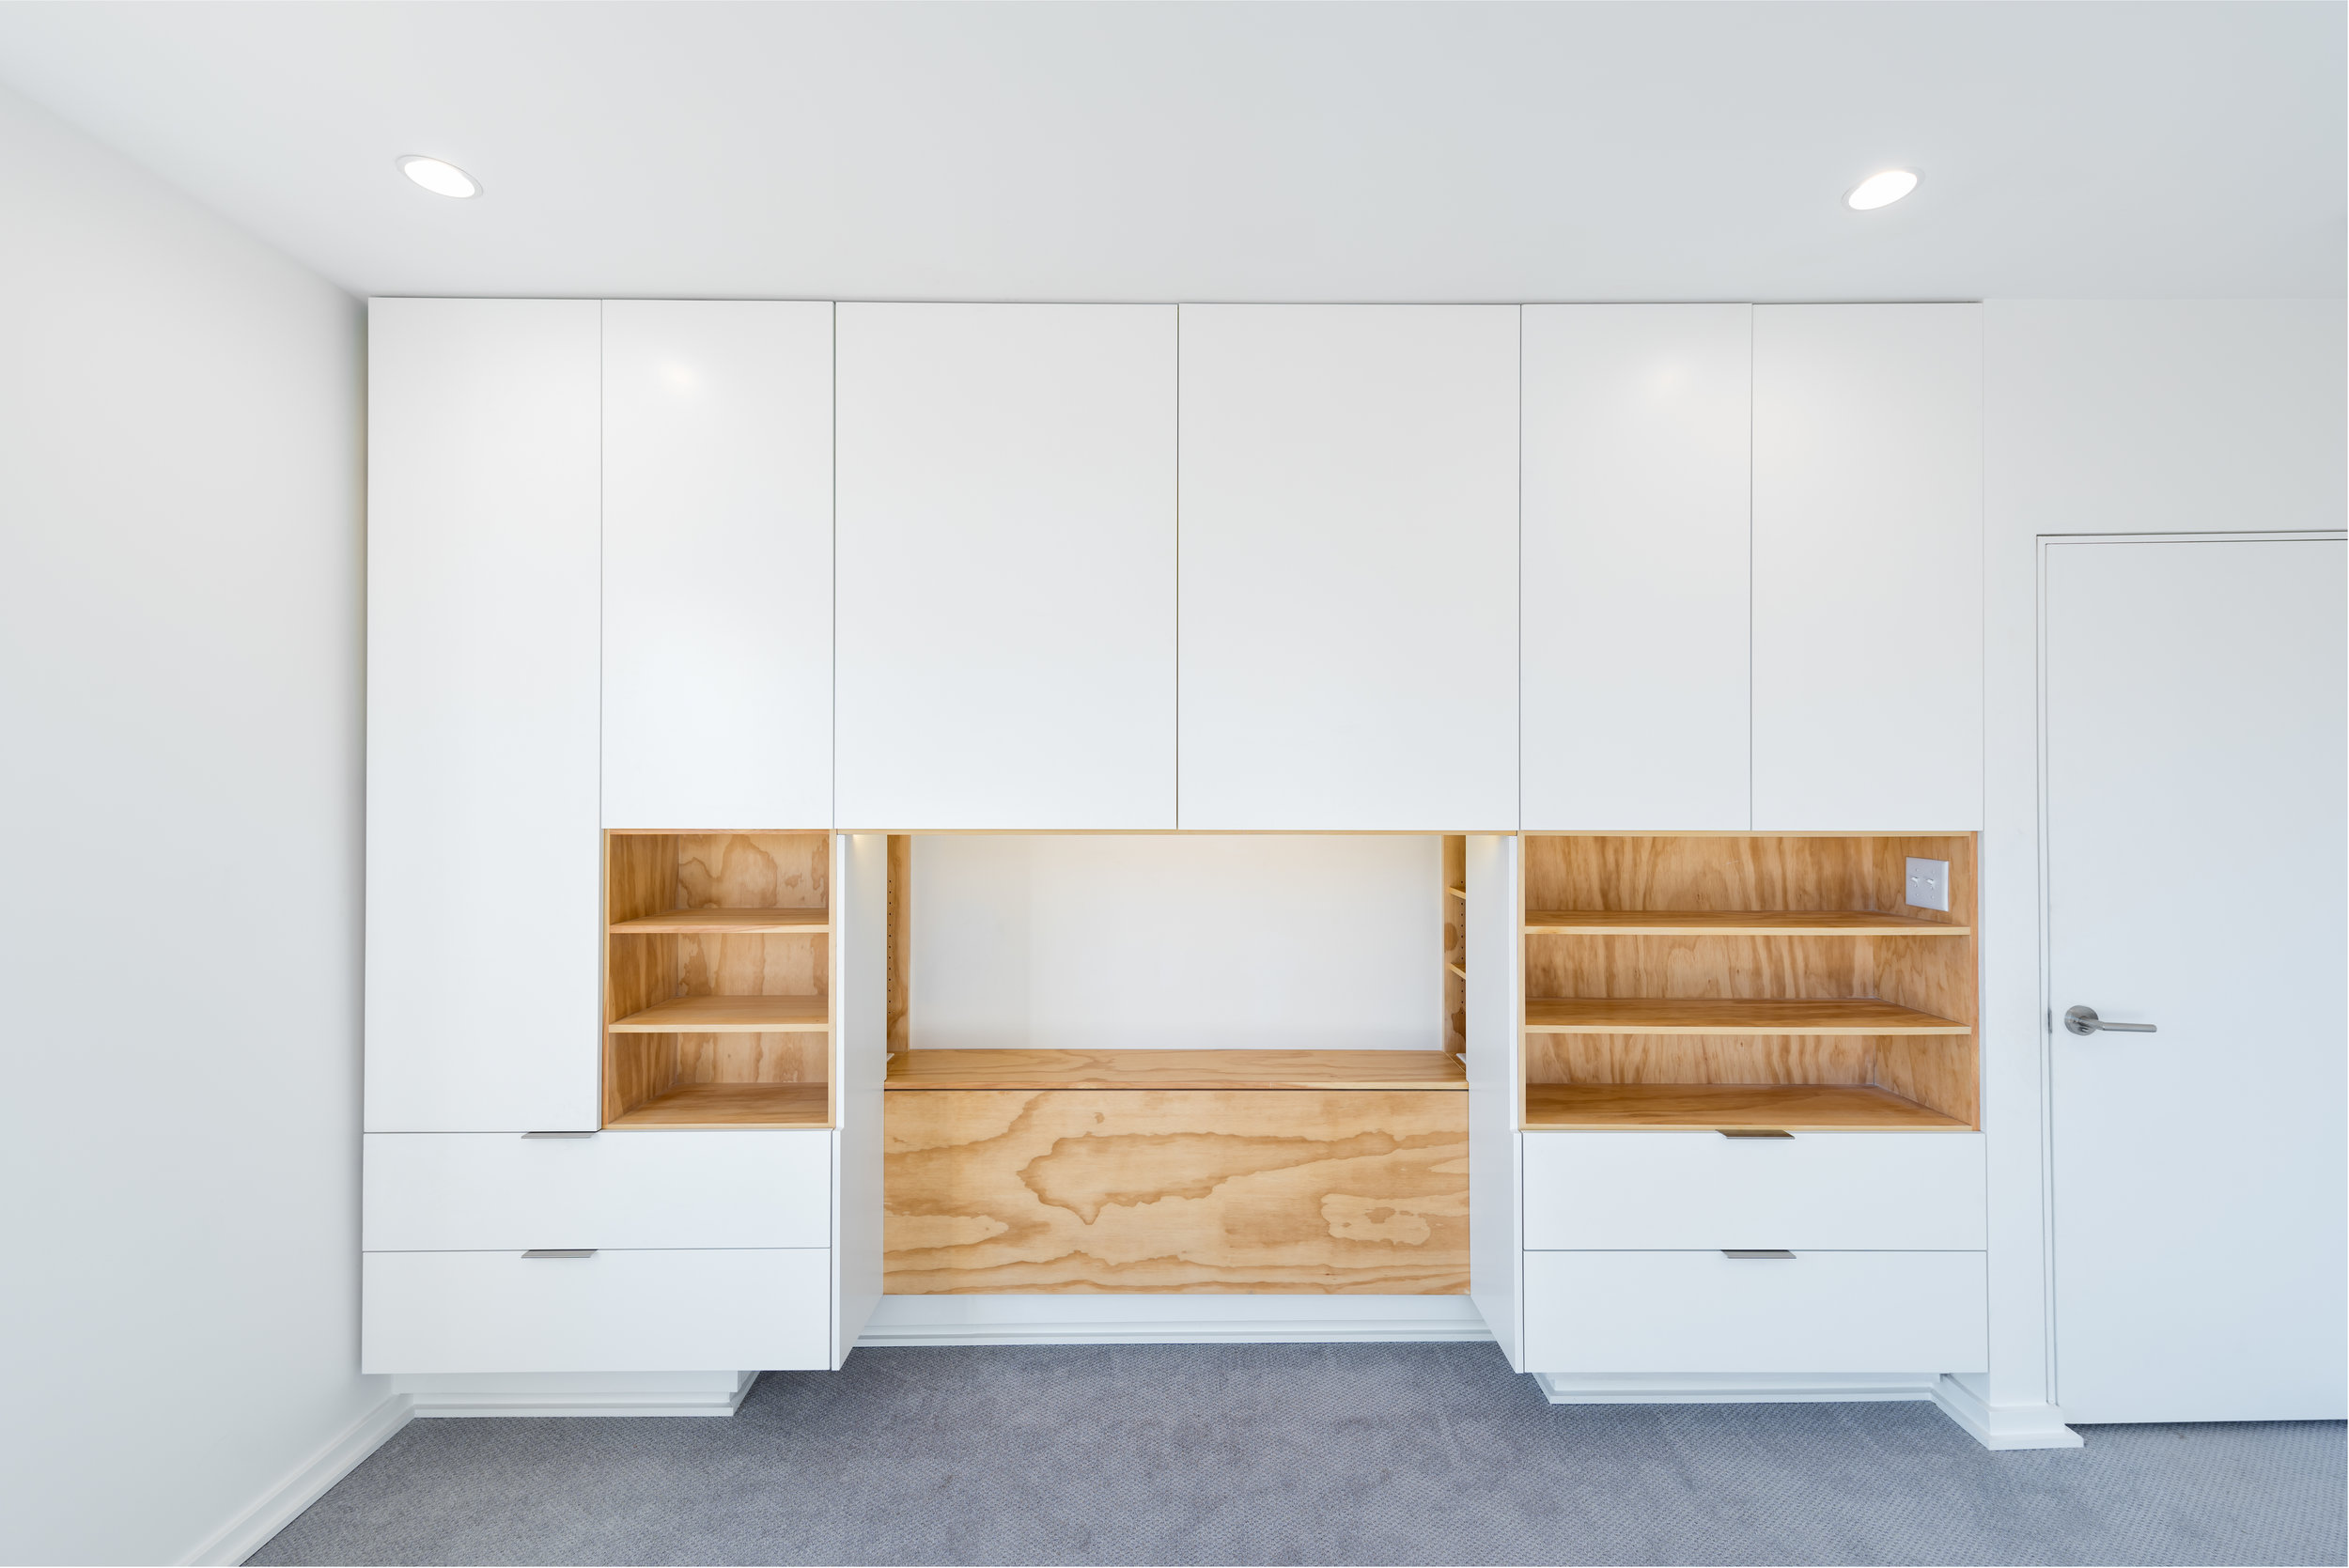 04 Bedroom Cabinets A.jpg